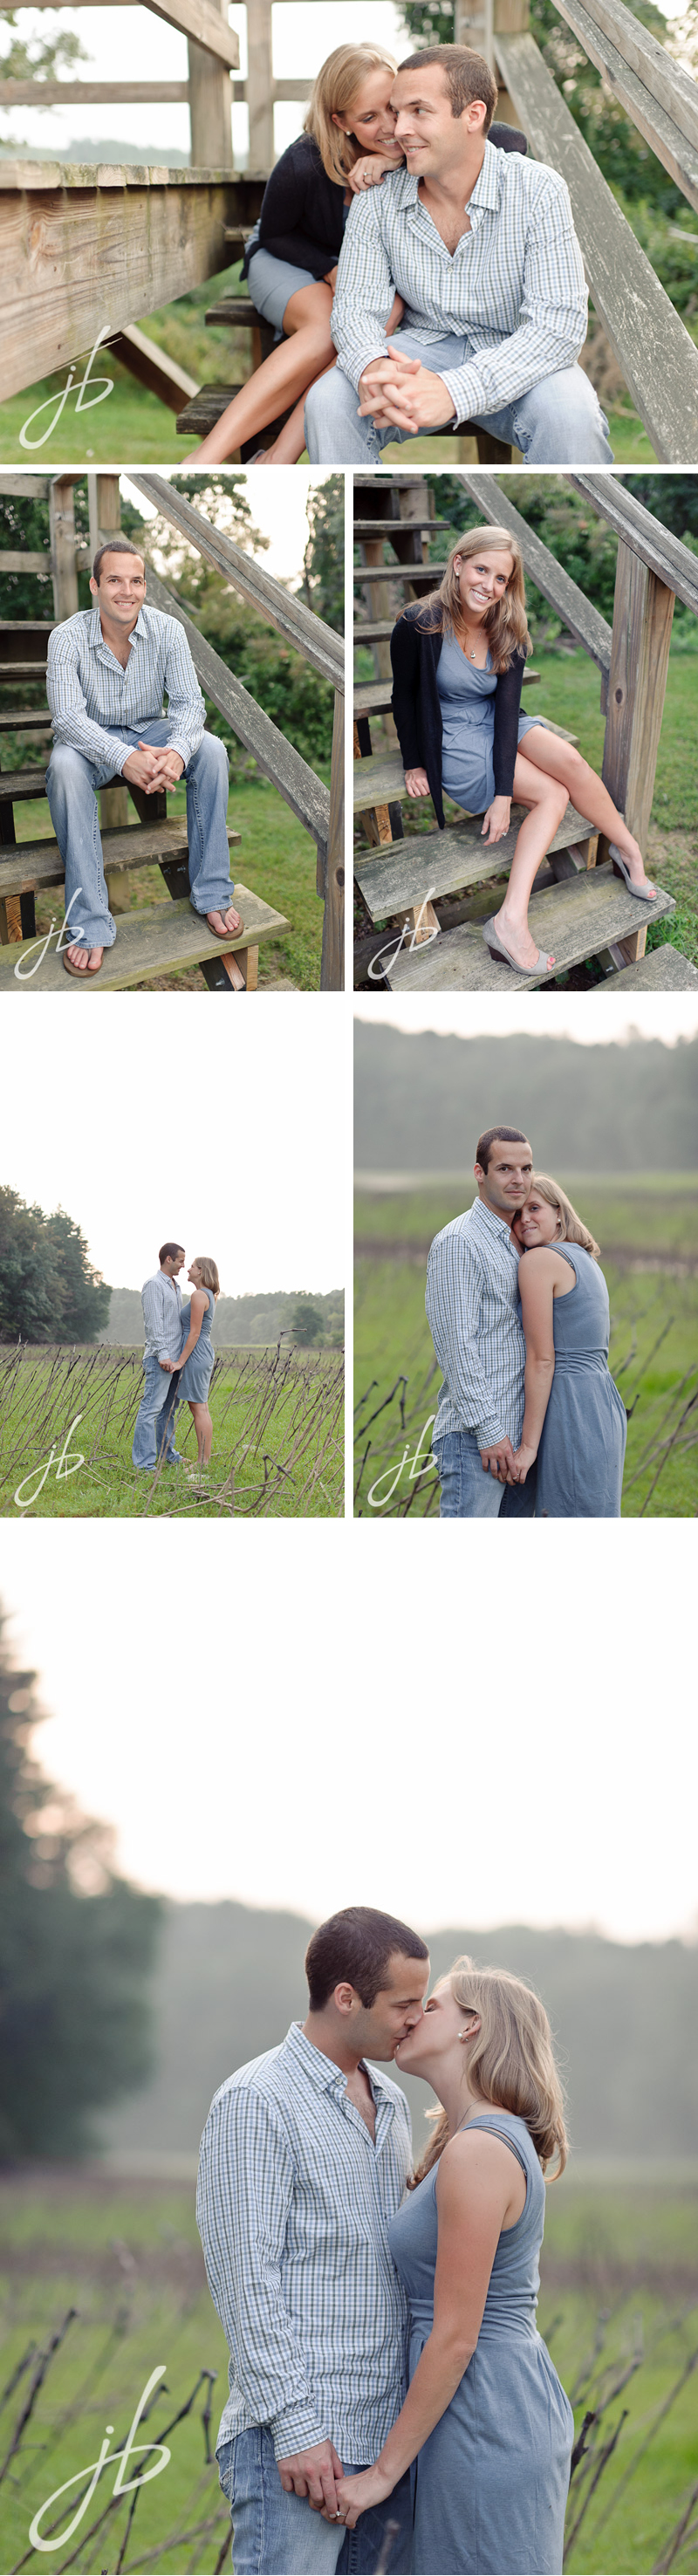 York PA wedding photography by Jeremy Bischoff Photography 005